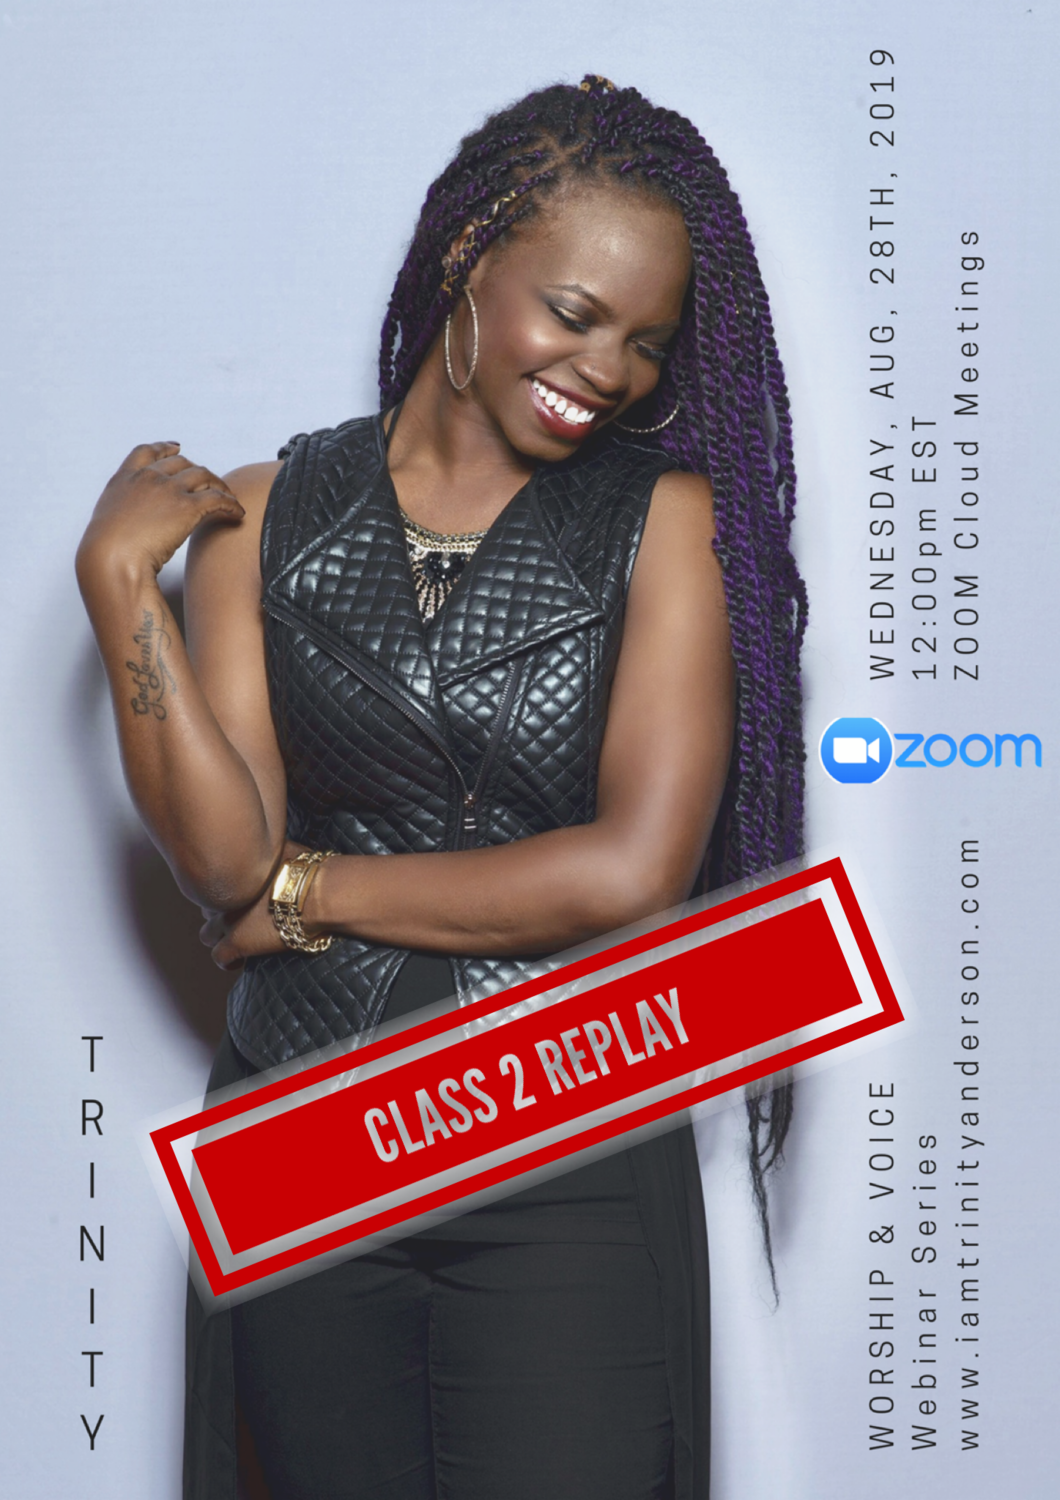 Worship and Voice | Class 2 REPLAY